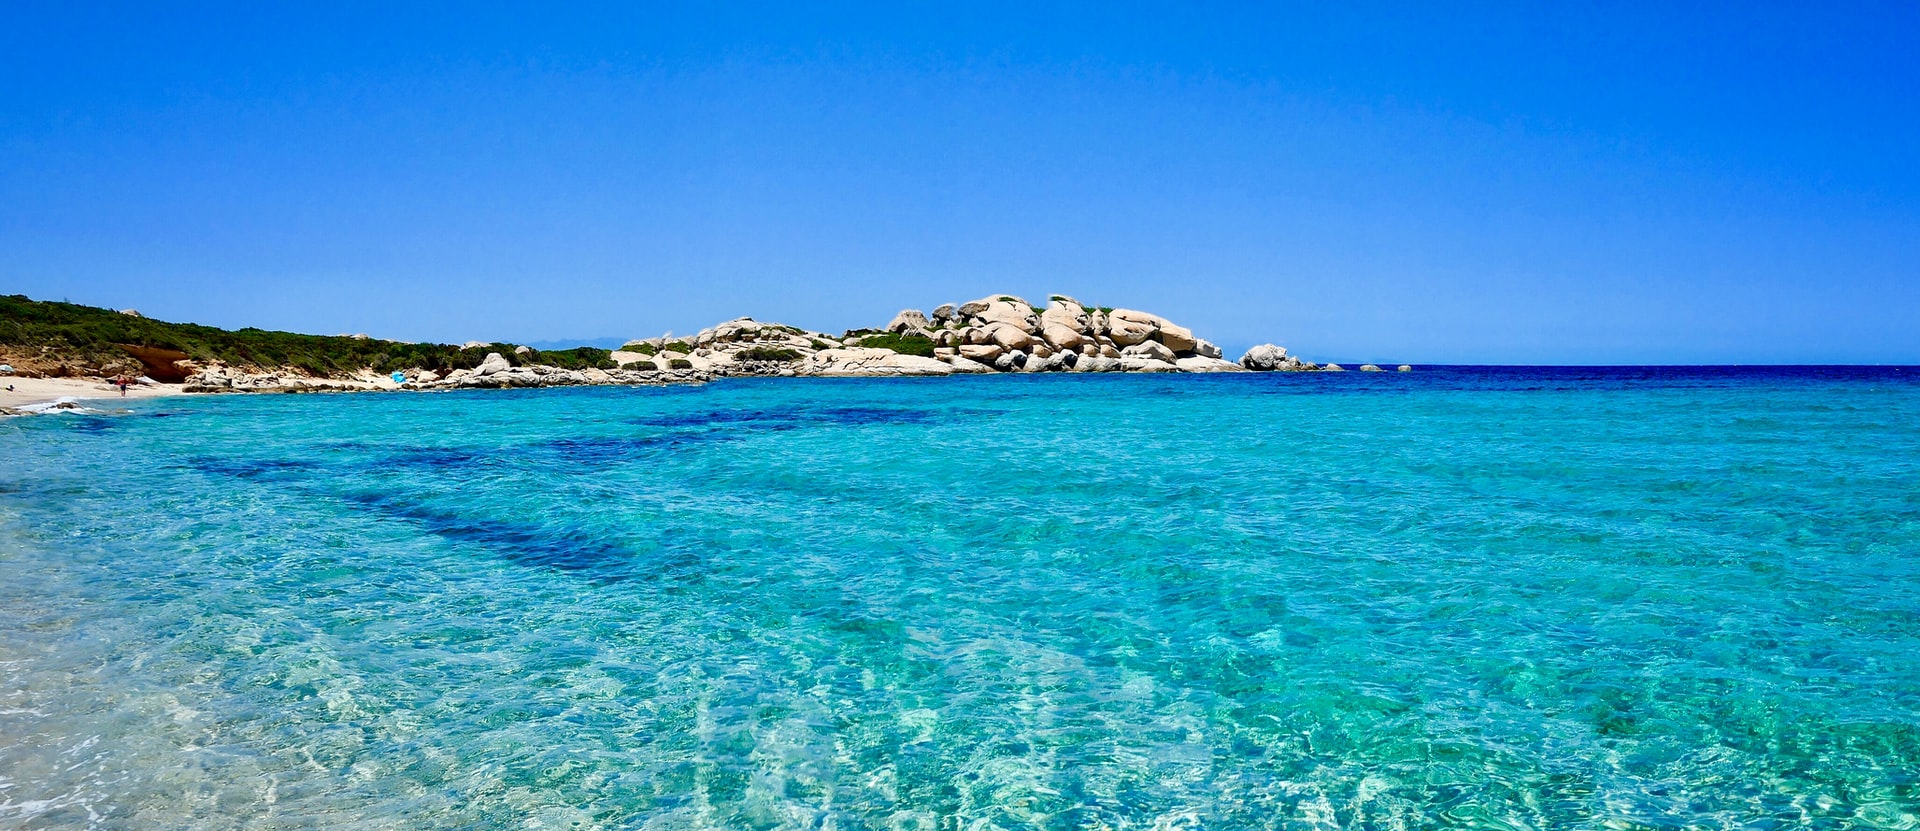 Ten things to do in magnificent Gallura